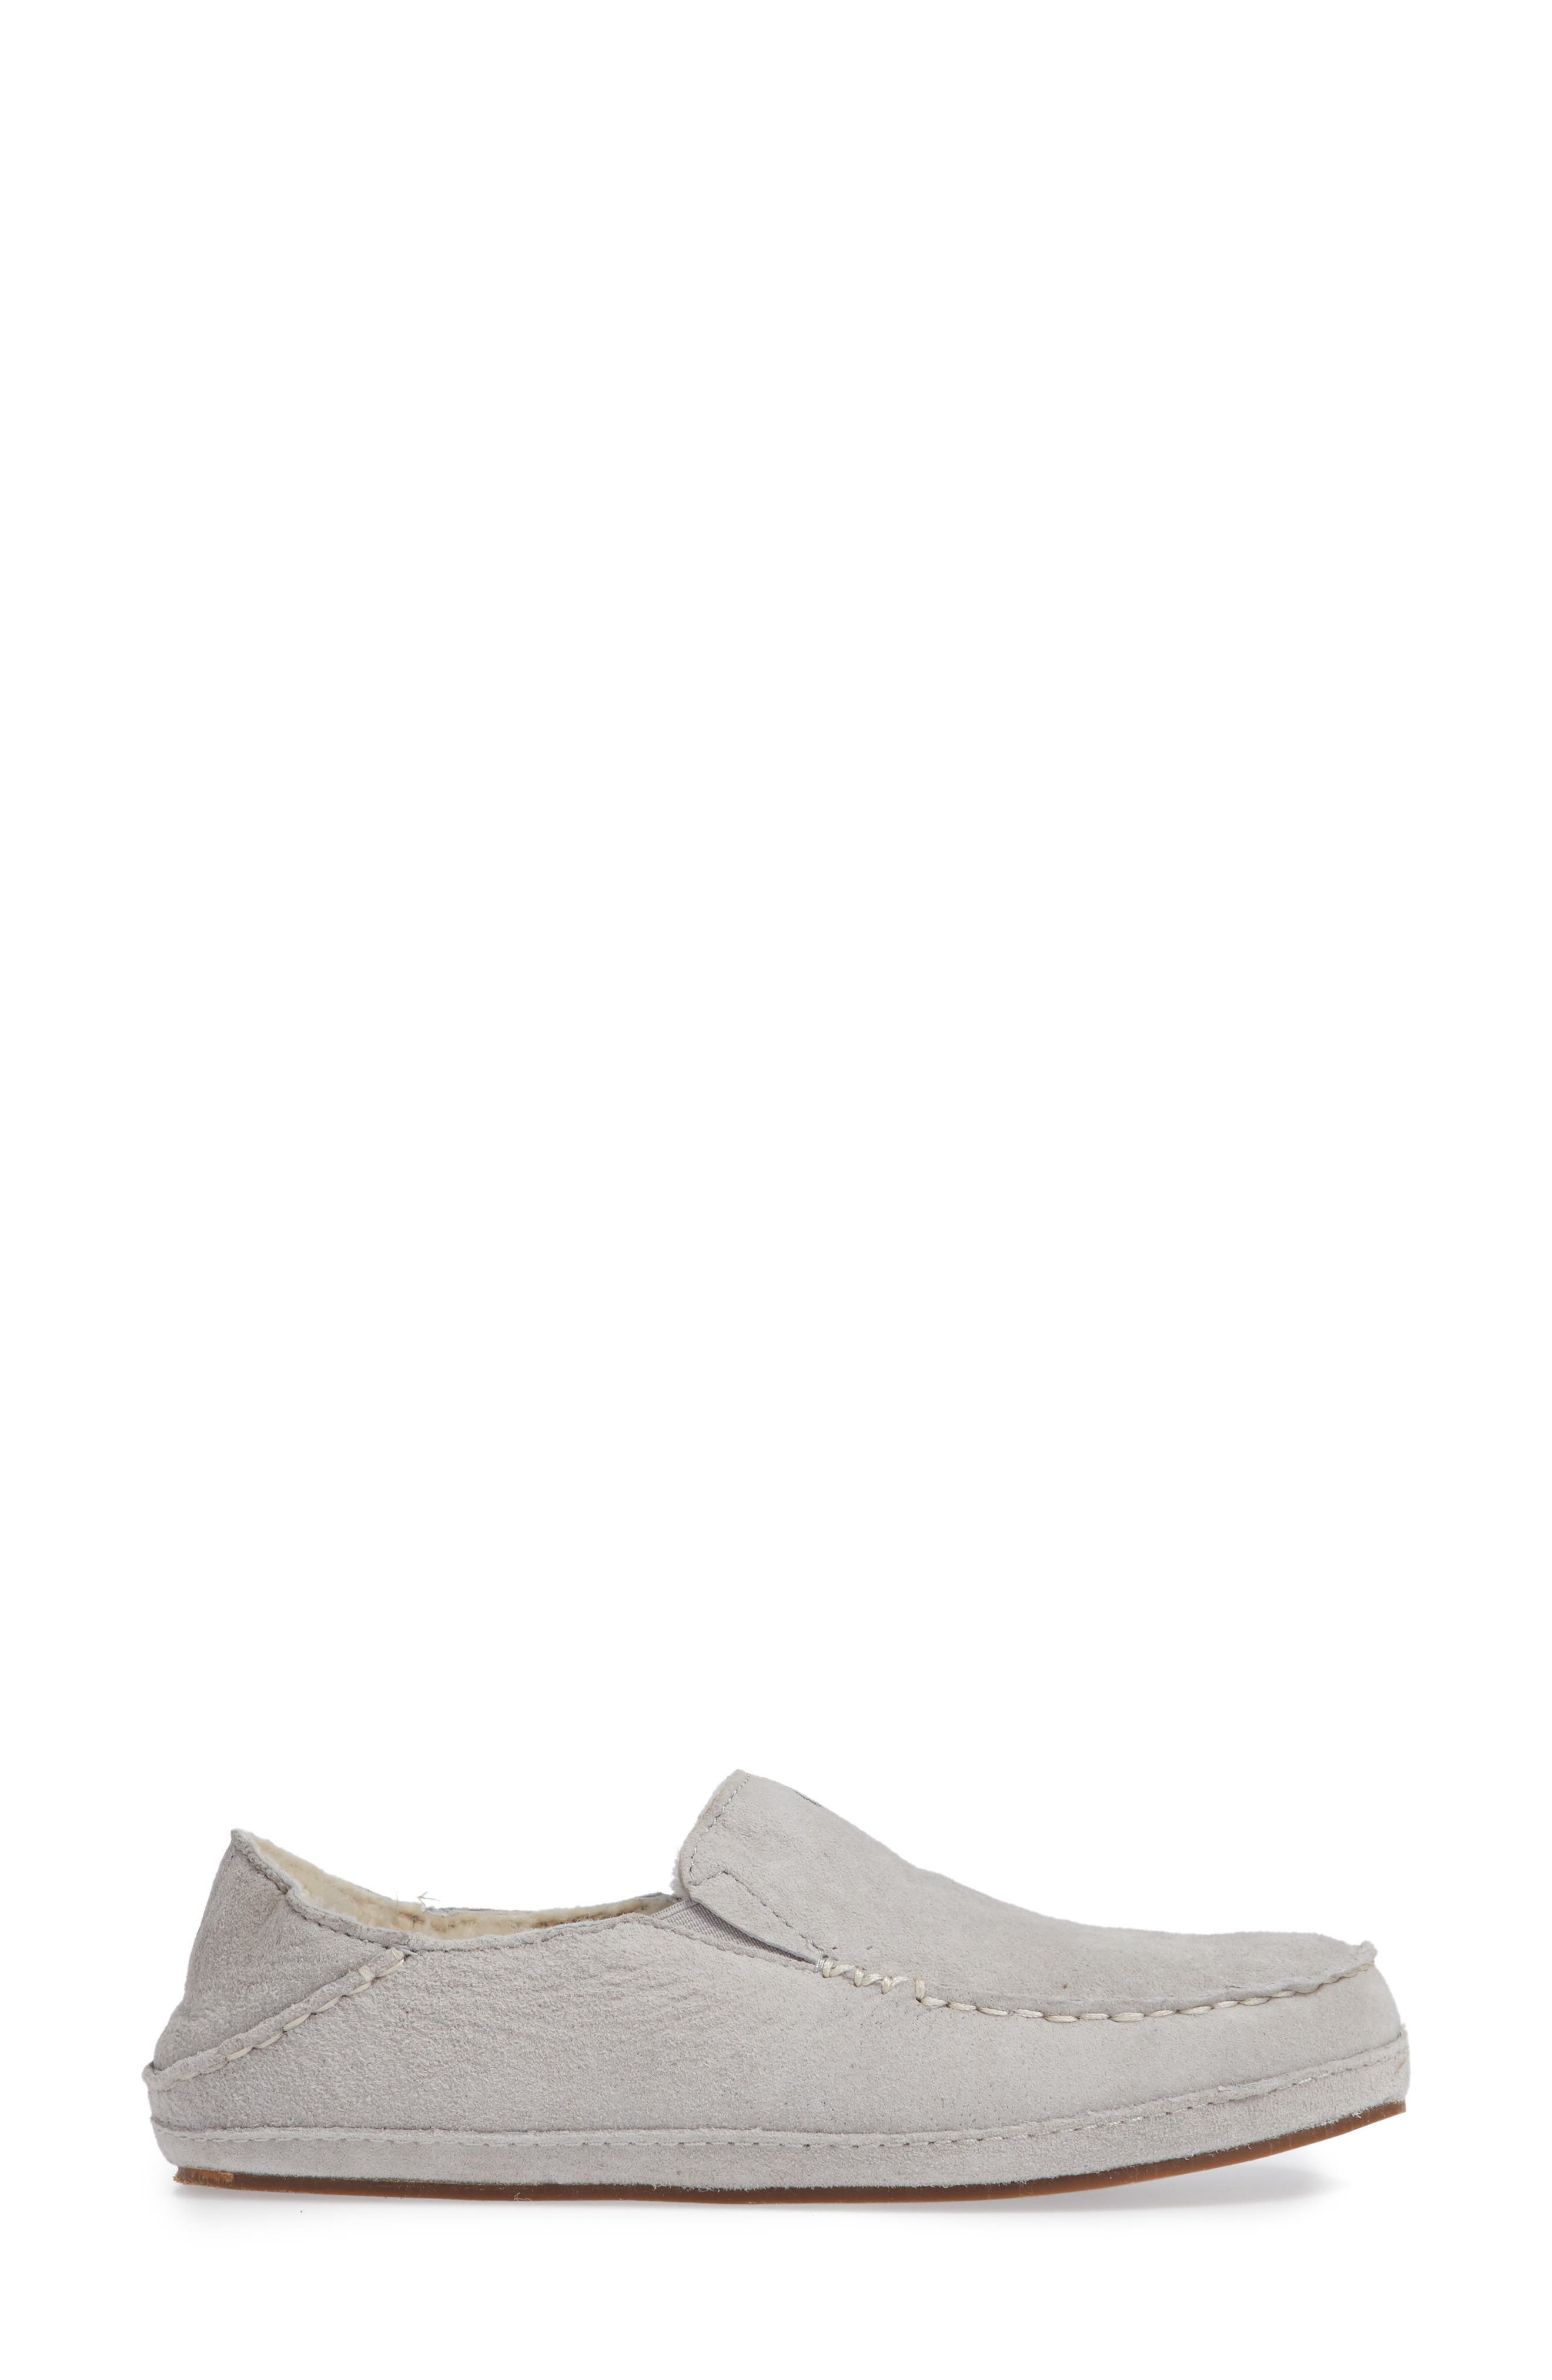 Nohea Nubuck Slipper,                             Alternate thumbnail 2, color,                             PALE GREY/ PALE GREY LEATHER